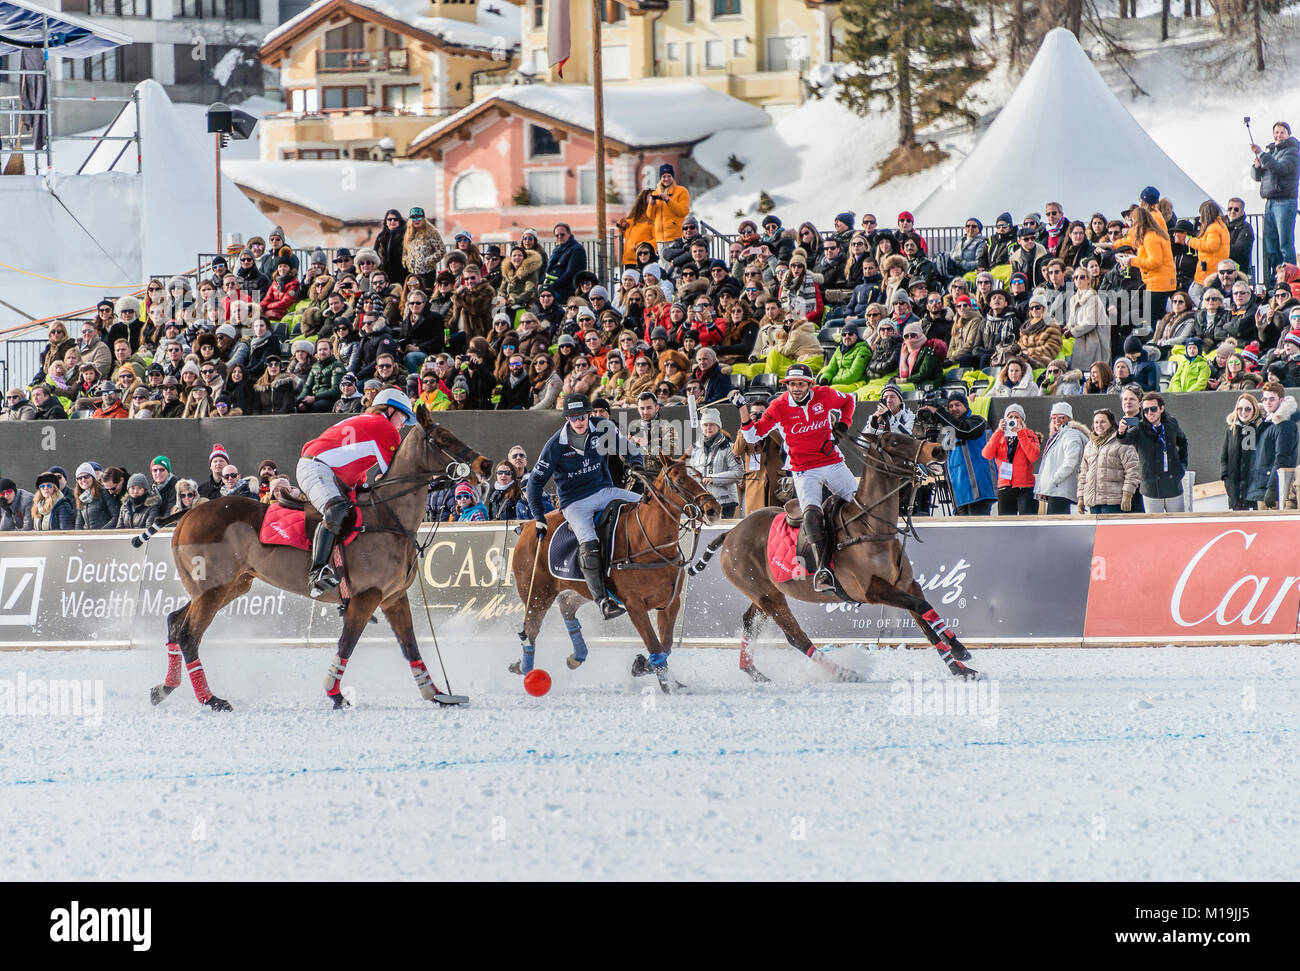 St.Moritz, Switzerland. 28th Jan, 2018. Members of the 'Maserati' team battle for the ball with team 'Cartier' - Stock Image